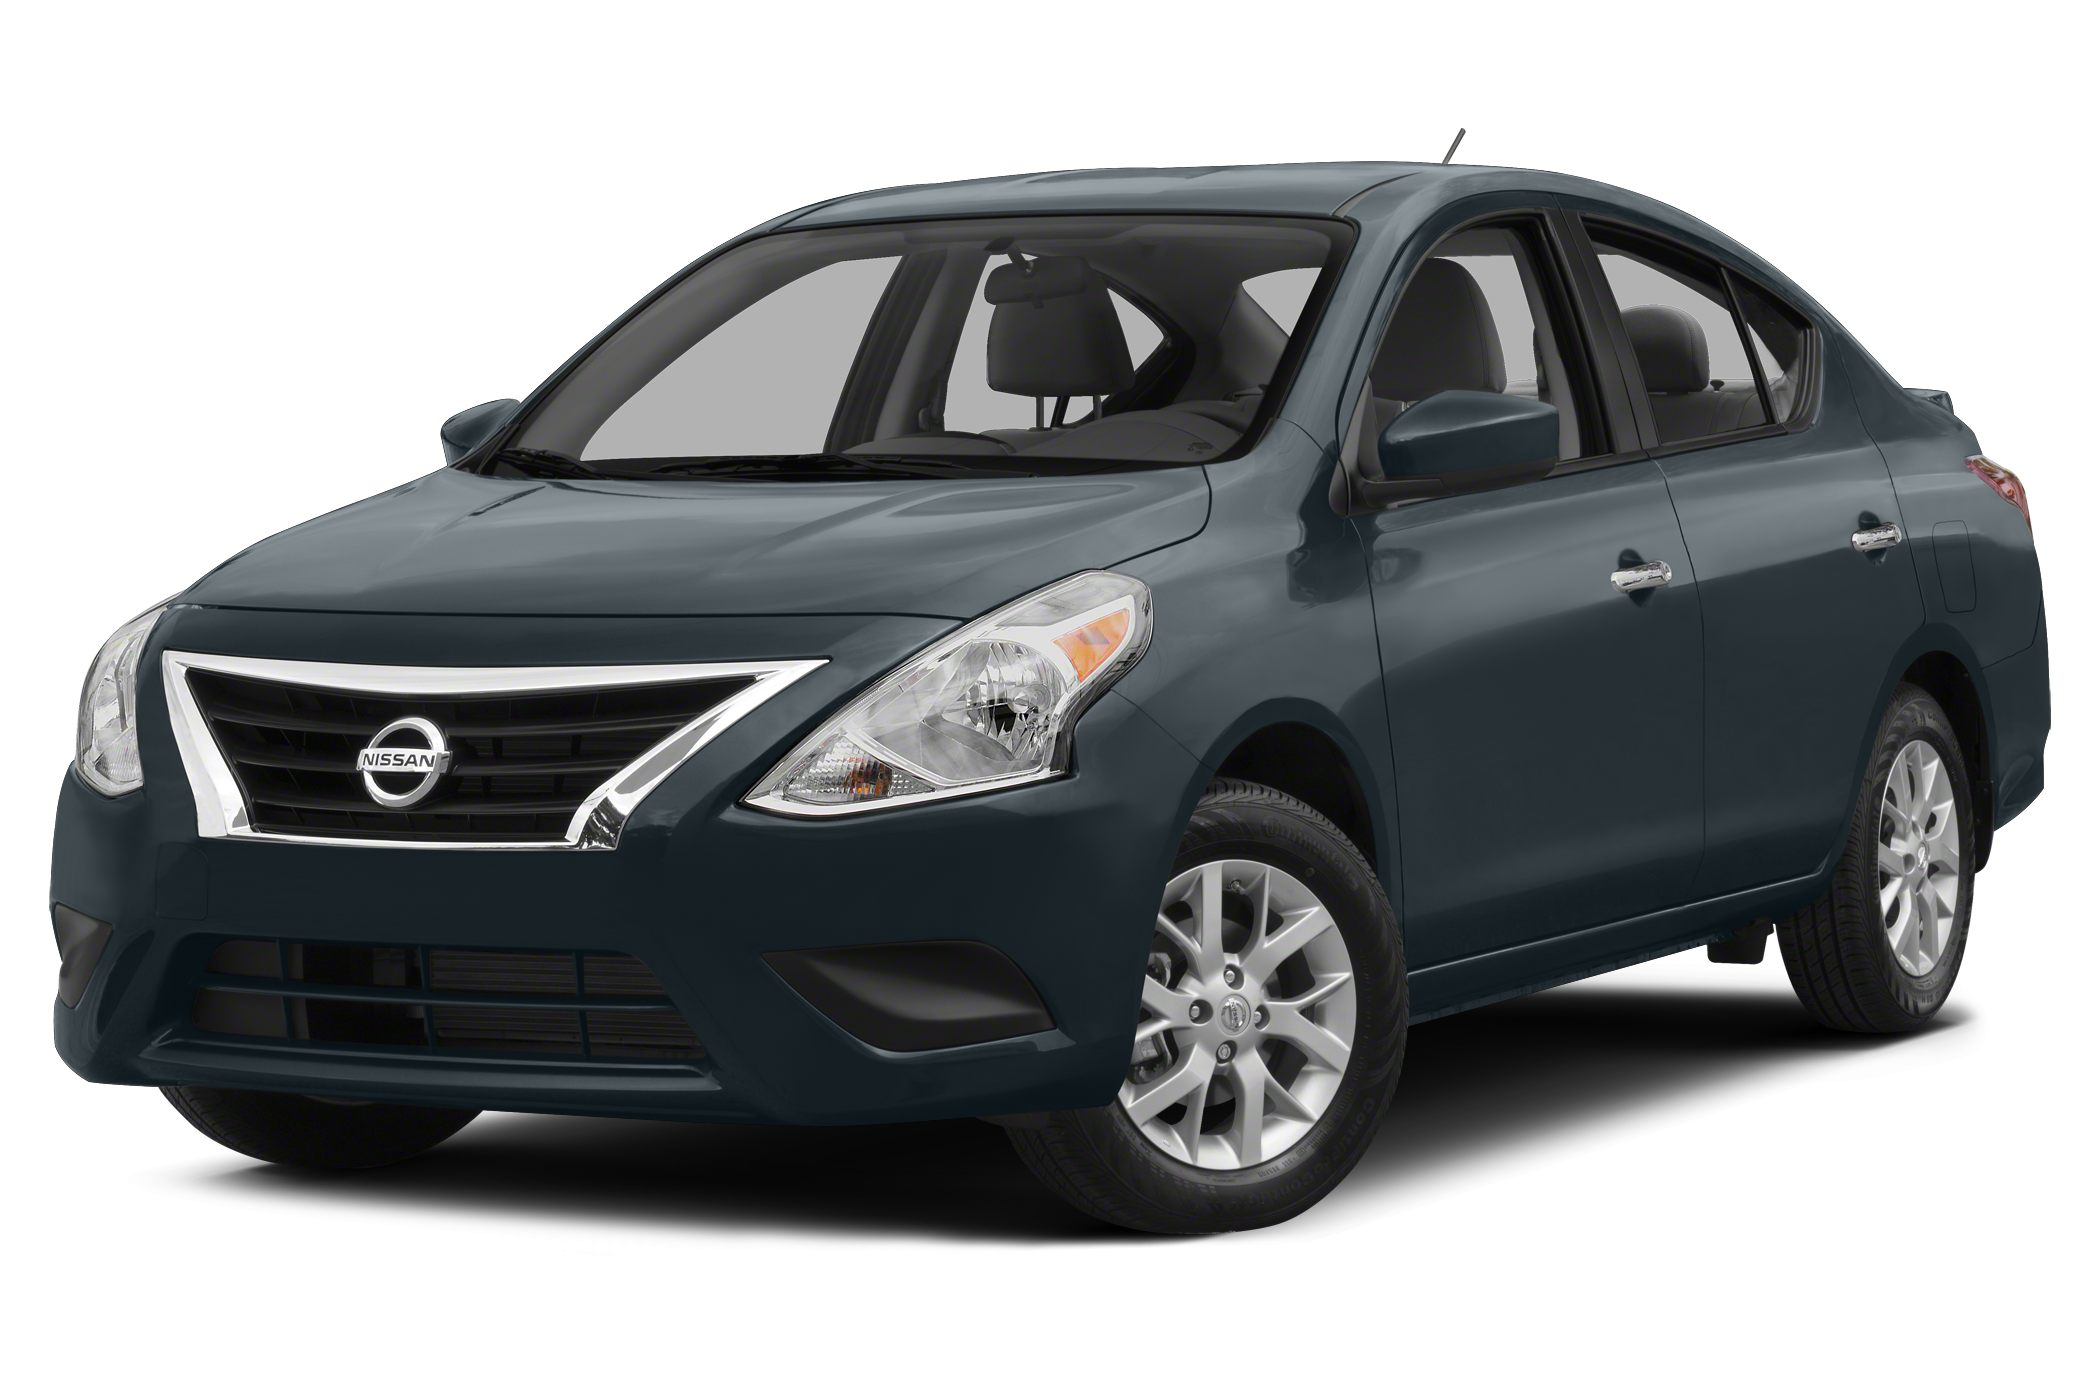 2015 Nissan Versa 1.6 SV Sedan for sale in San Jose for $16,535 with 7 miles.